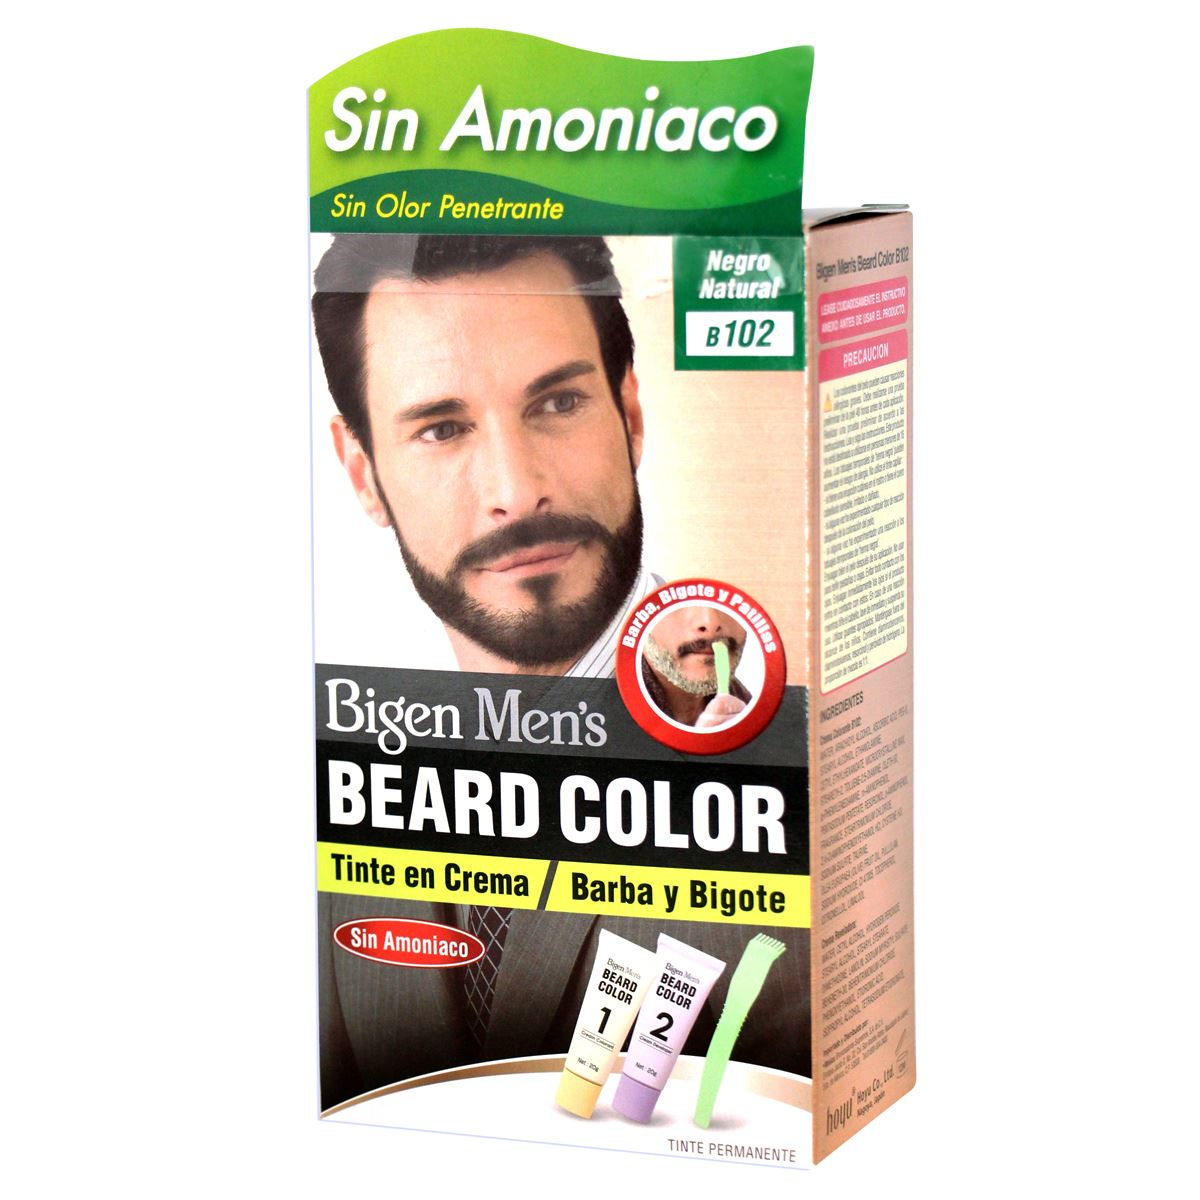 Bigen Coloración para Barba y Bigote color Negro Natural